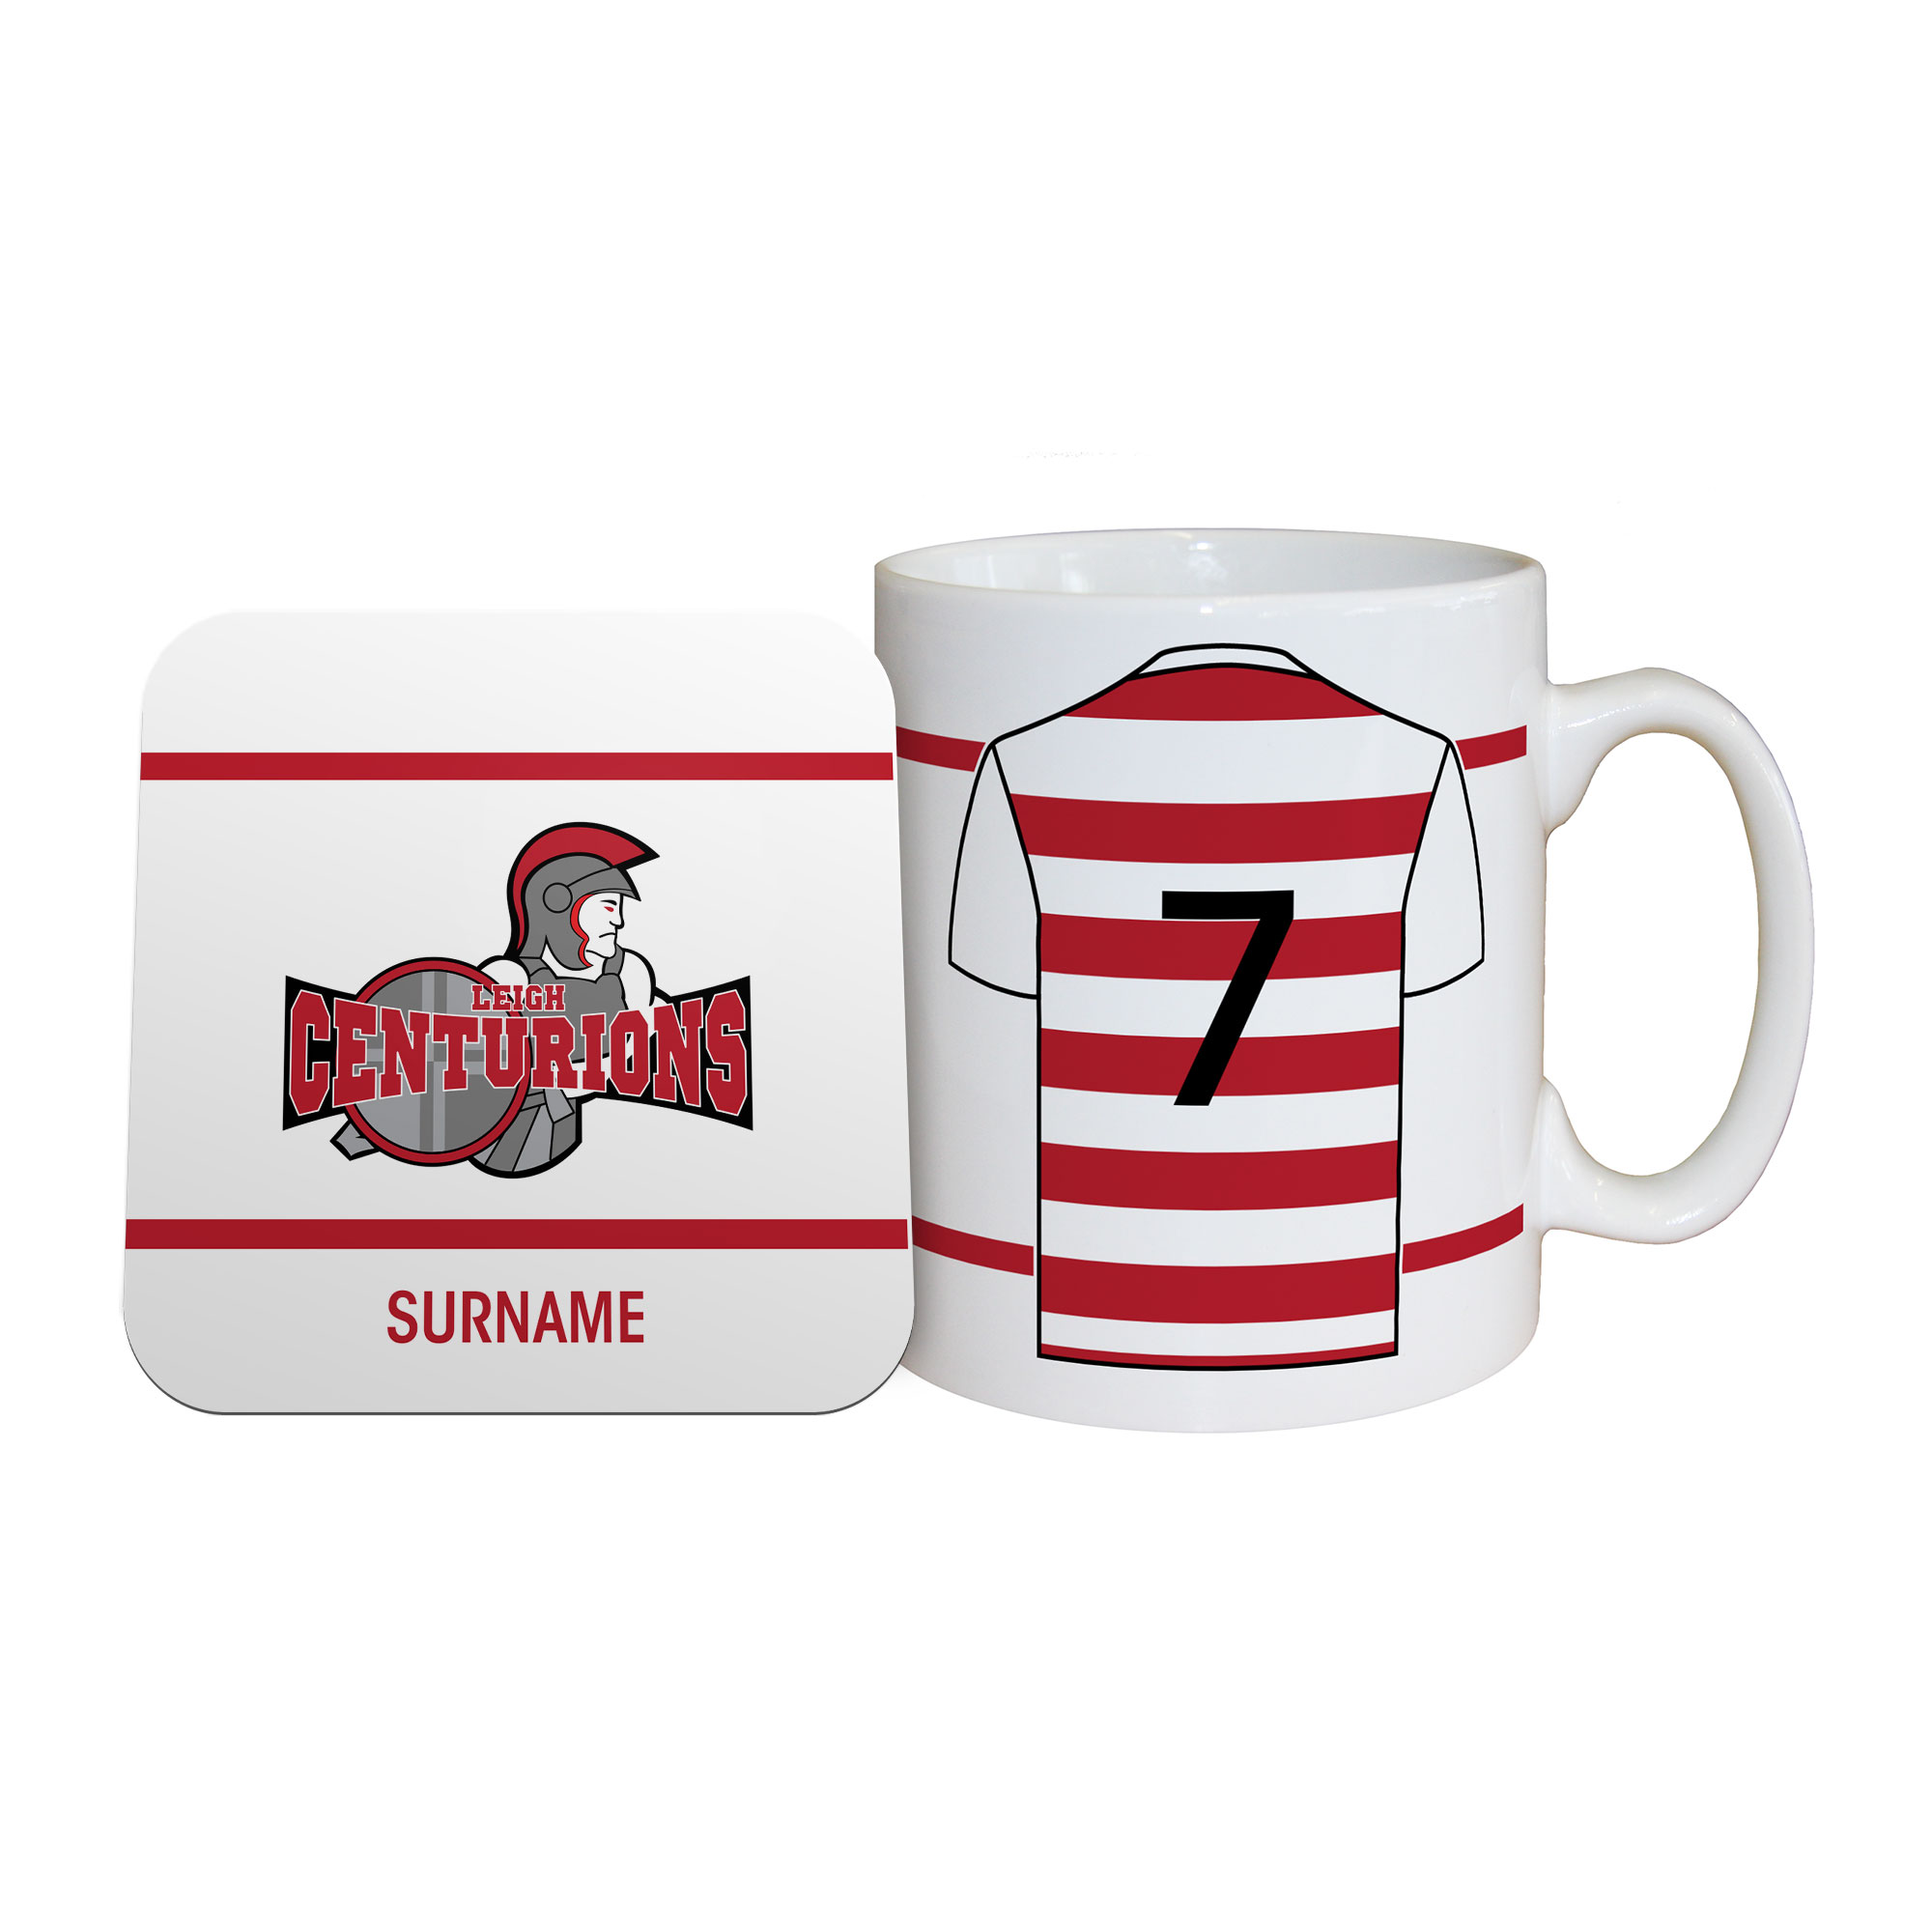 Leigh Centurions Shirt Mug & Coaster Set